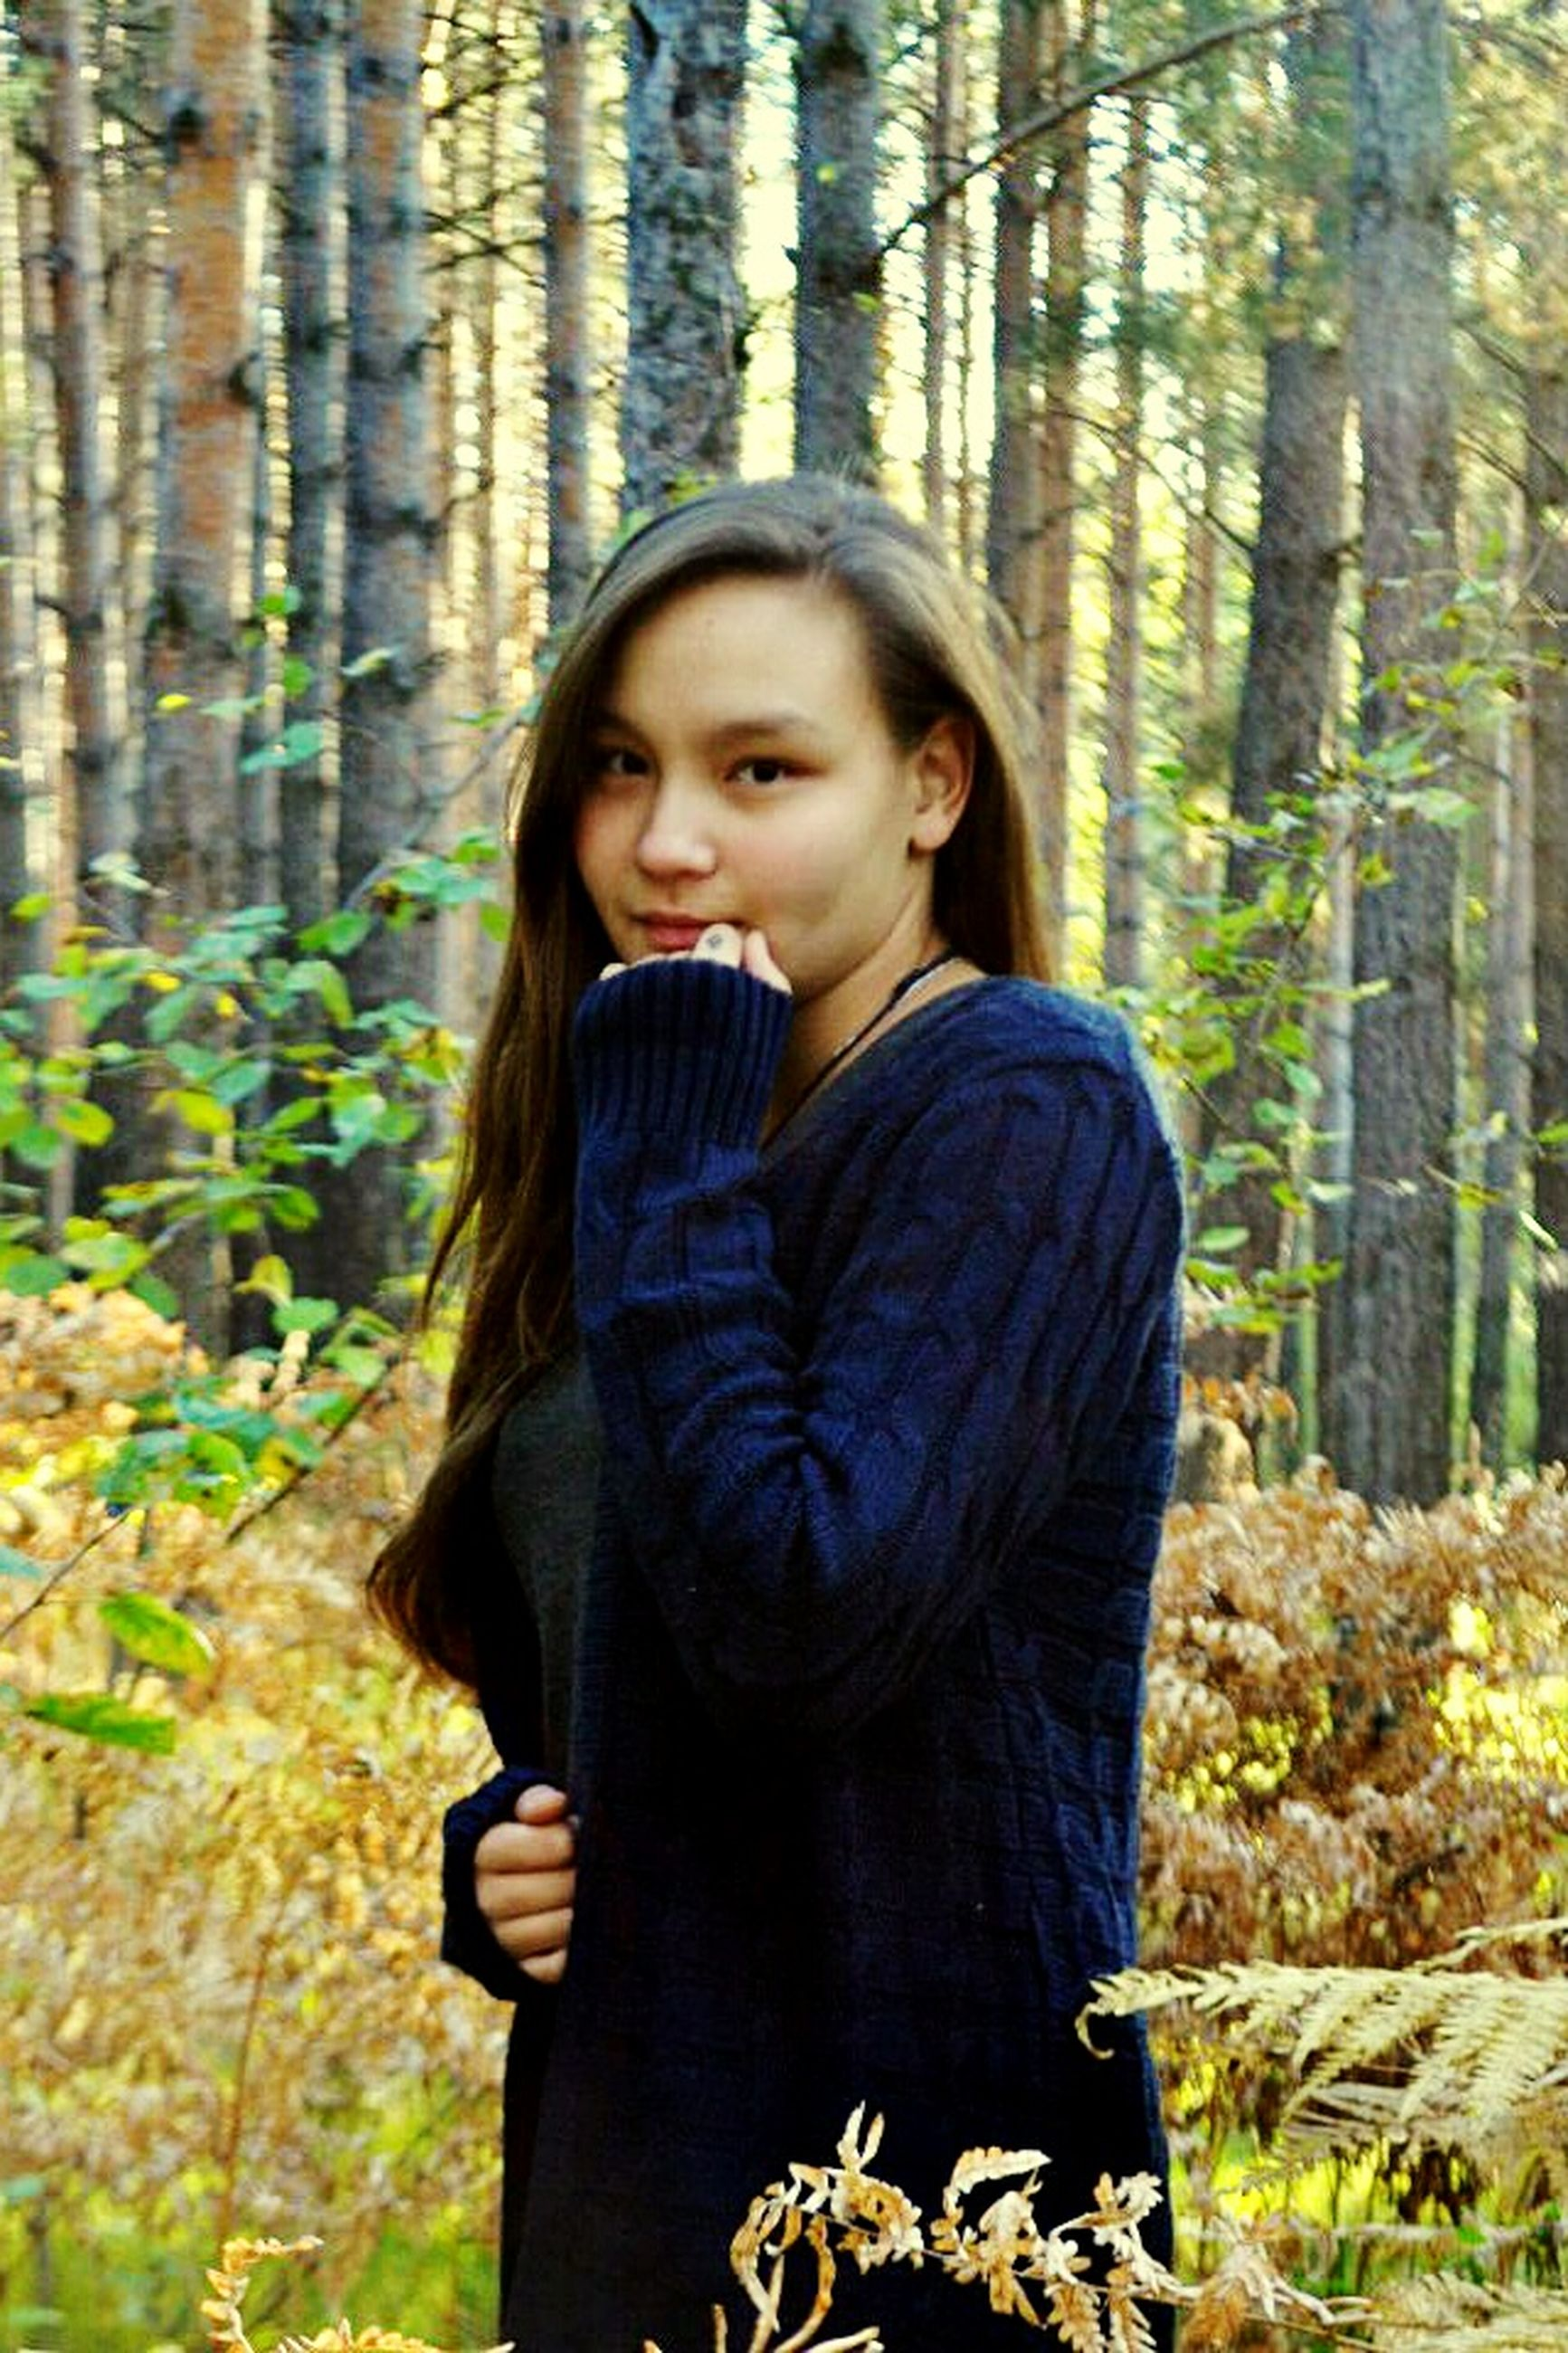 tree, portrait, person, forest, looking at camera, casual clothing, tree trunk, lifestyles, front view, standing, leisure activity, waist up, three quarter length, young adult, focus on foreground, smiling, nature, childhood